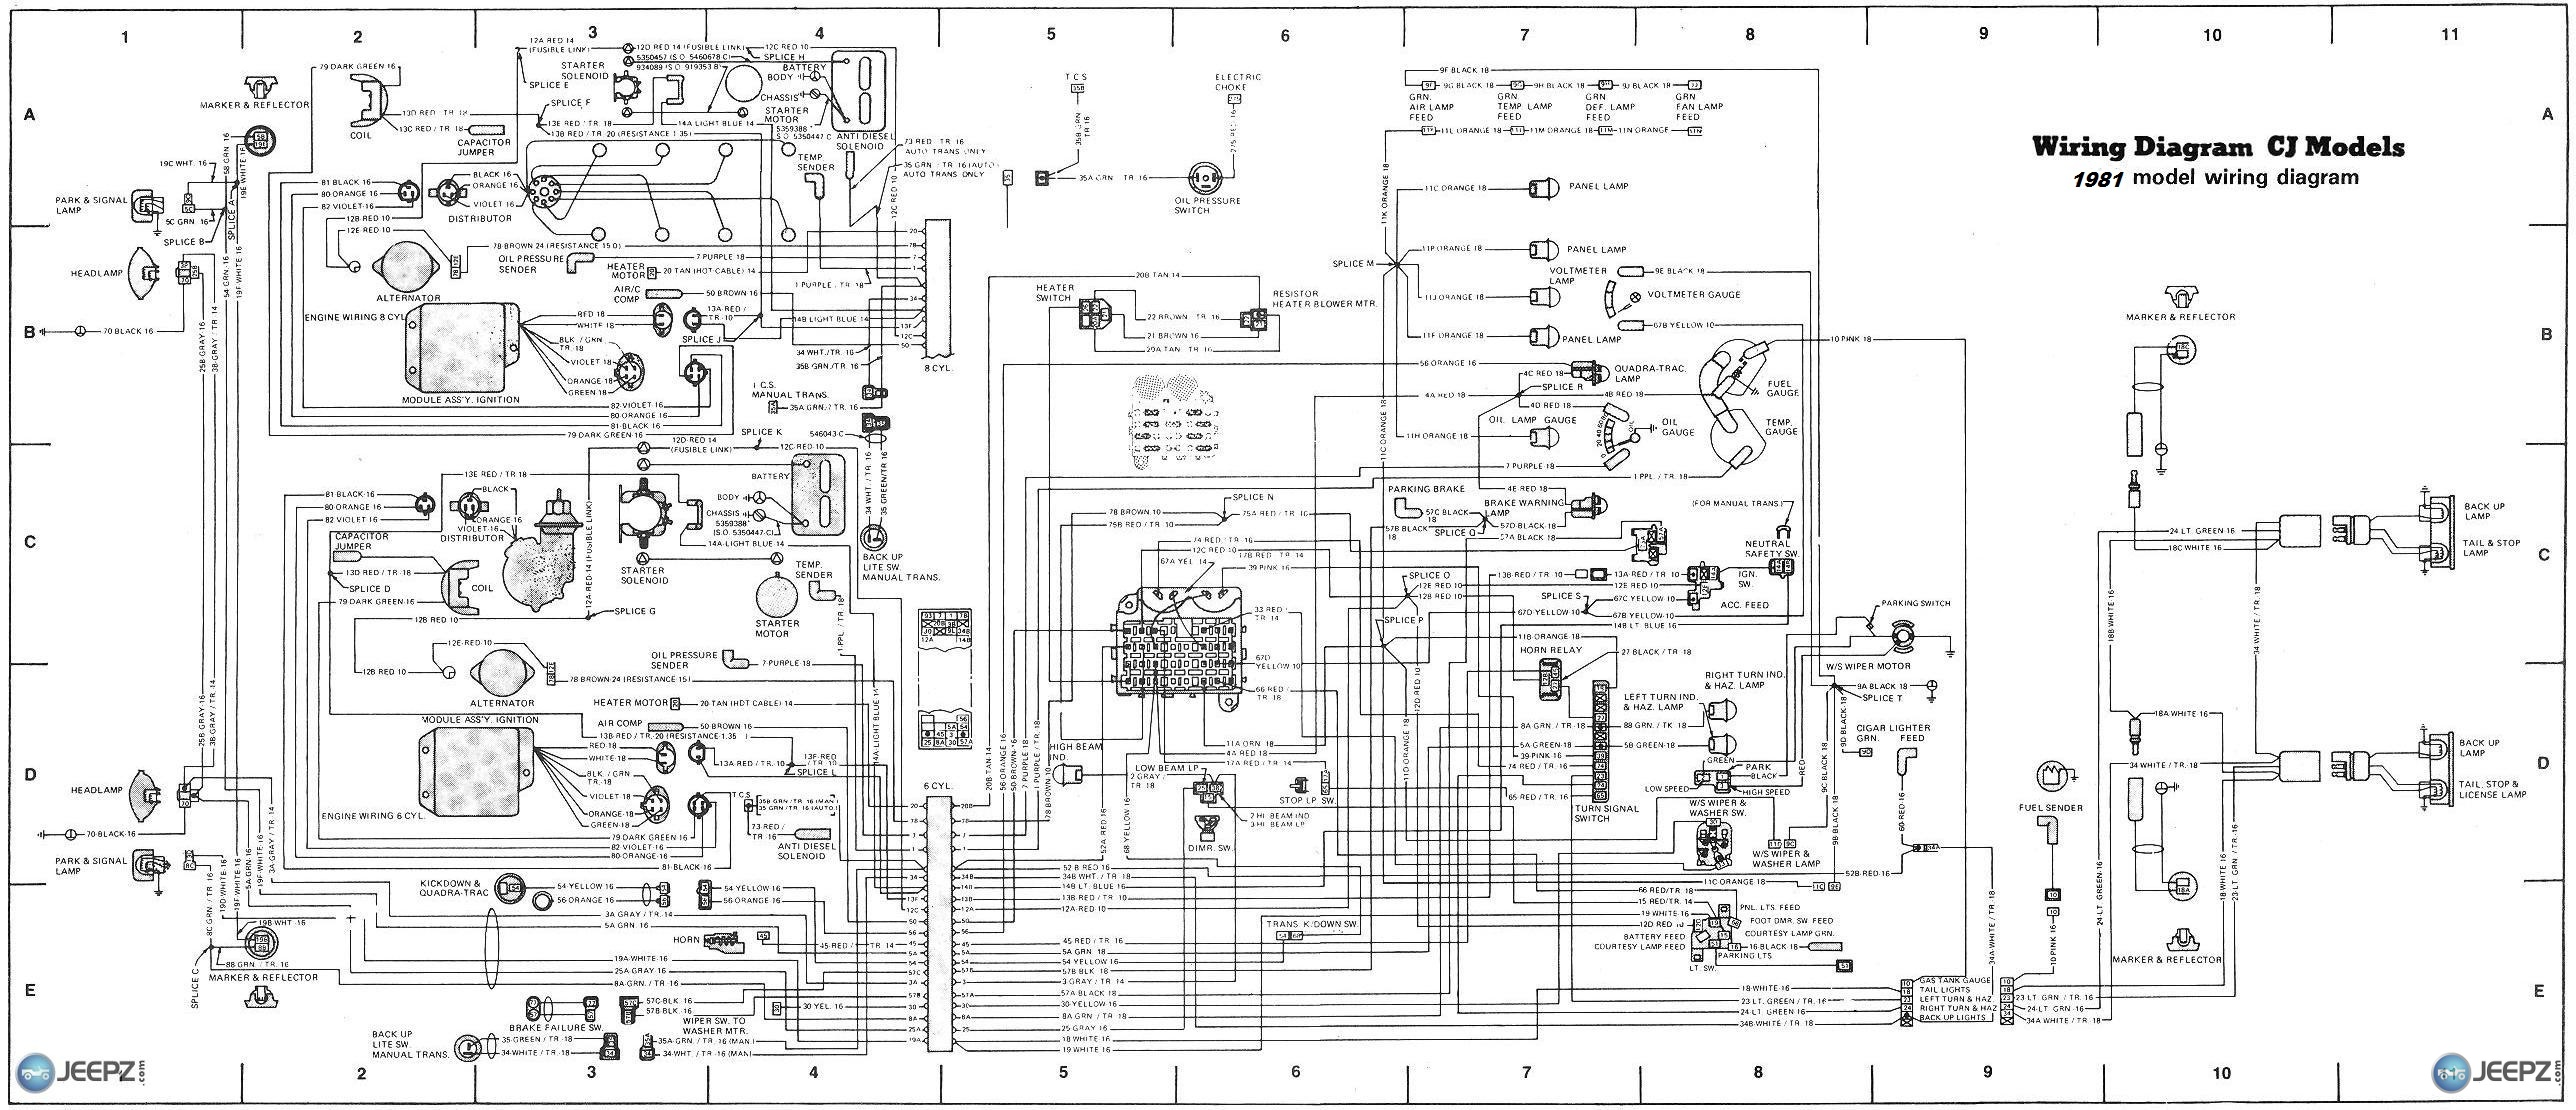 cj 7 wire diagram cj wiring diagram 1981 jpg